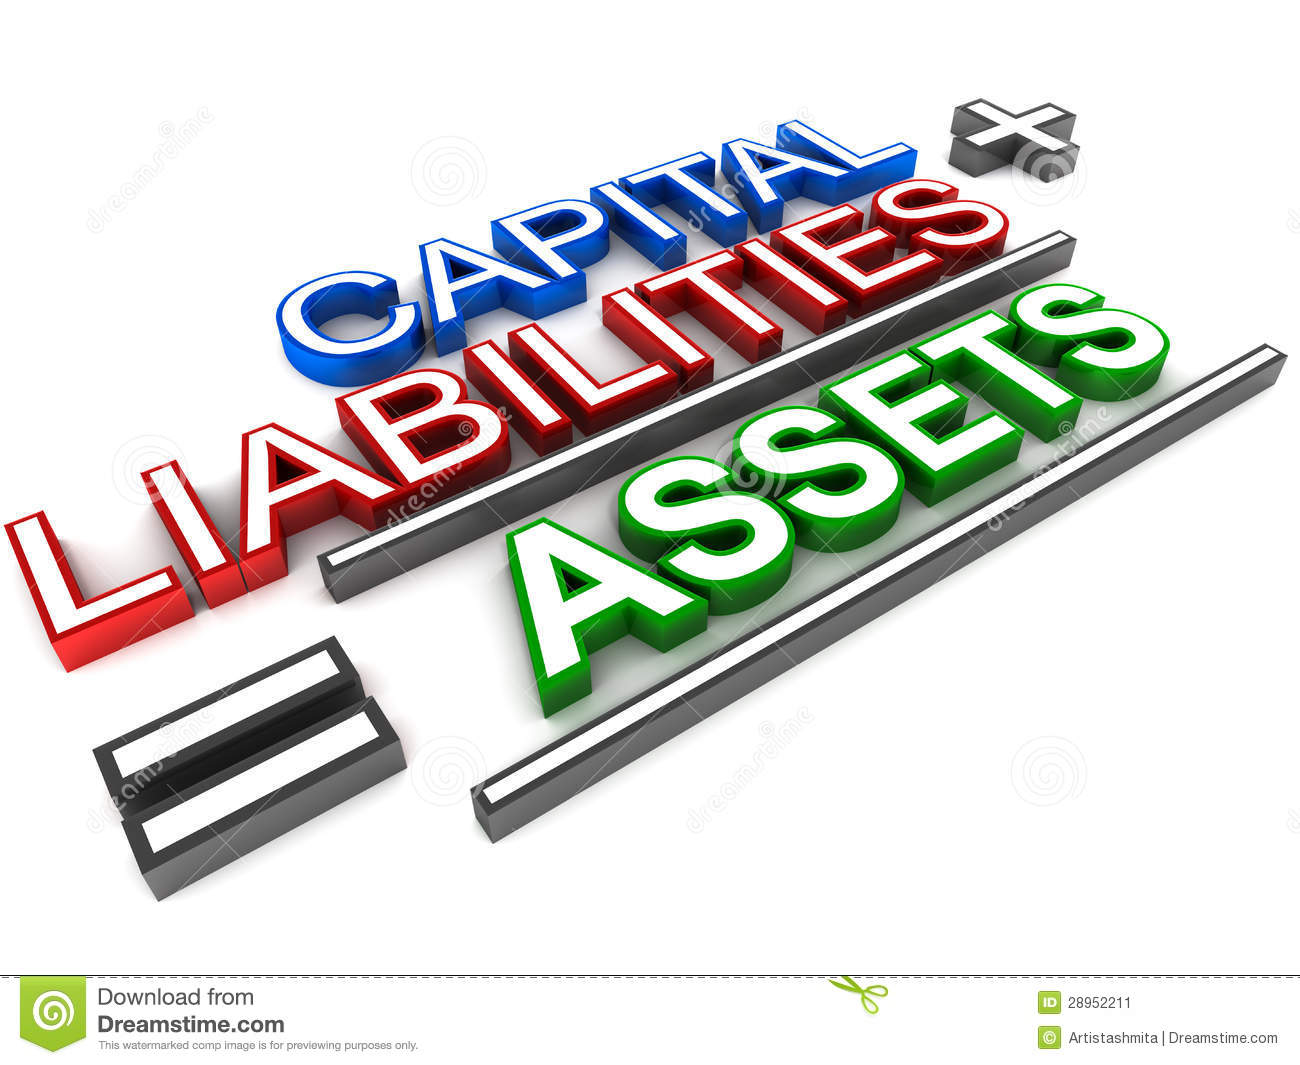 Accounting Equation Showing Capital And Liability Adding Up To Assets